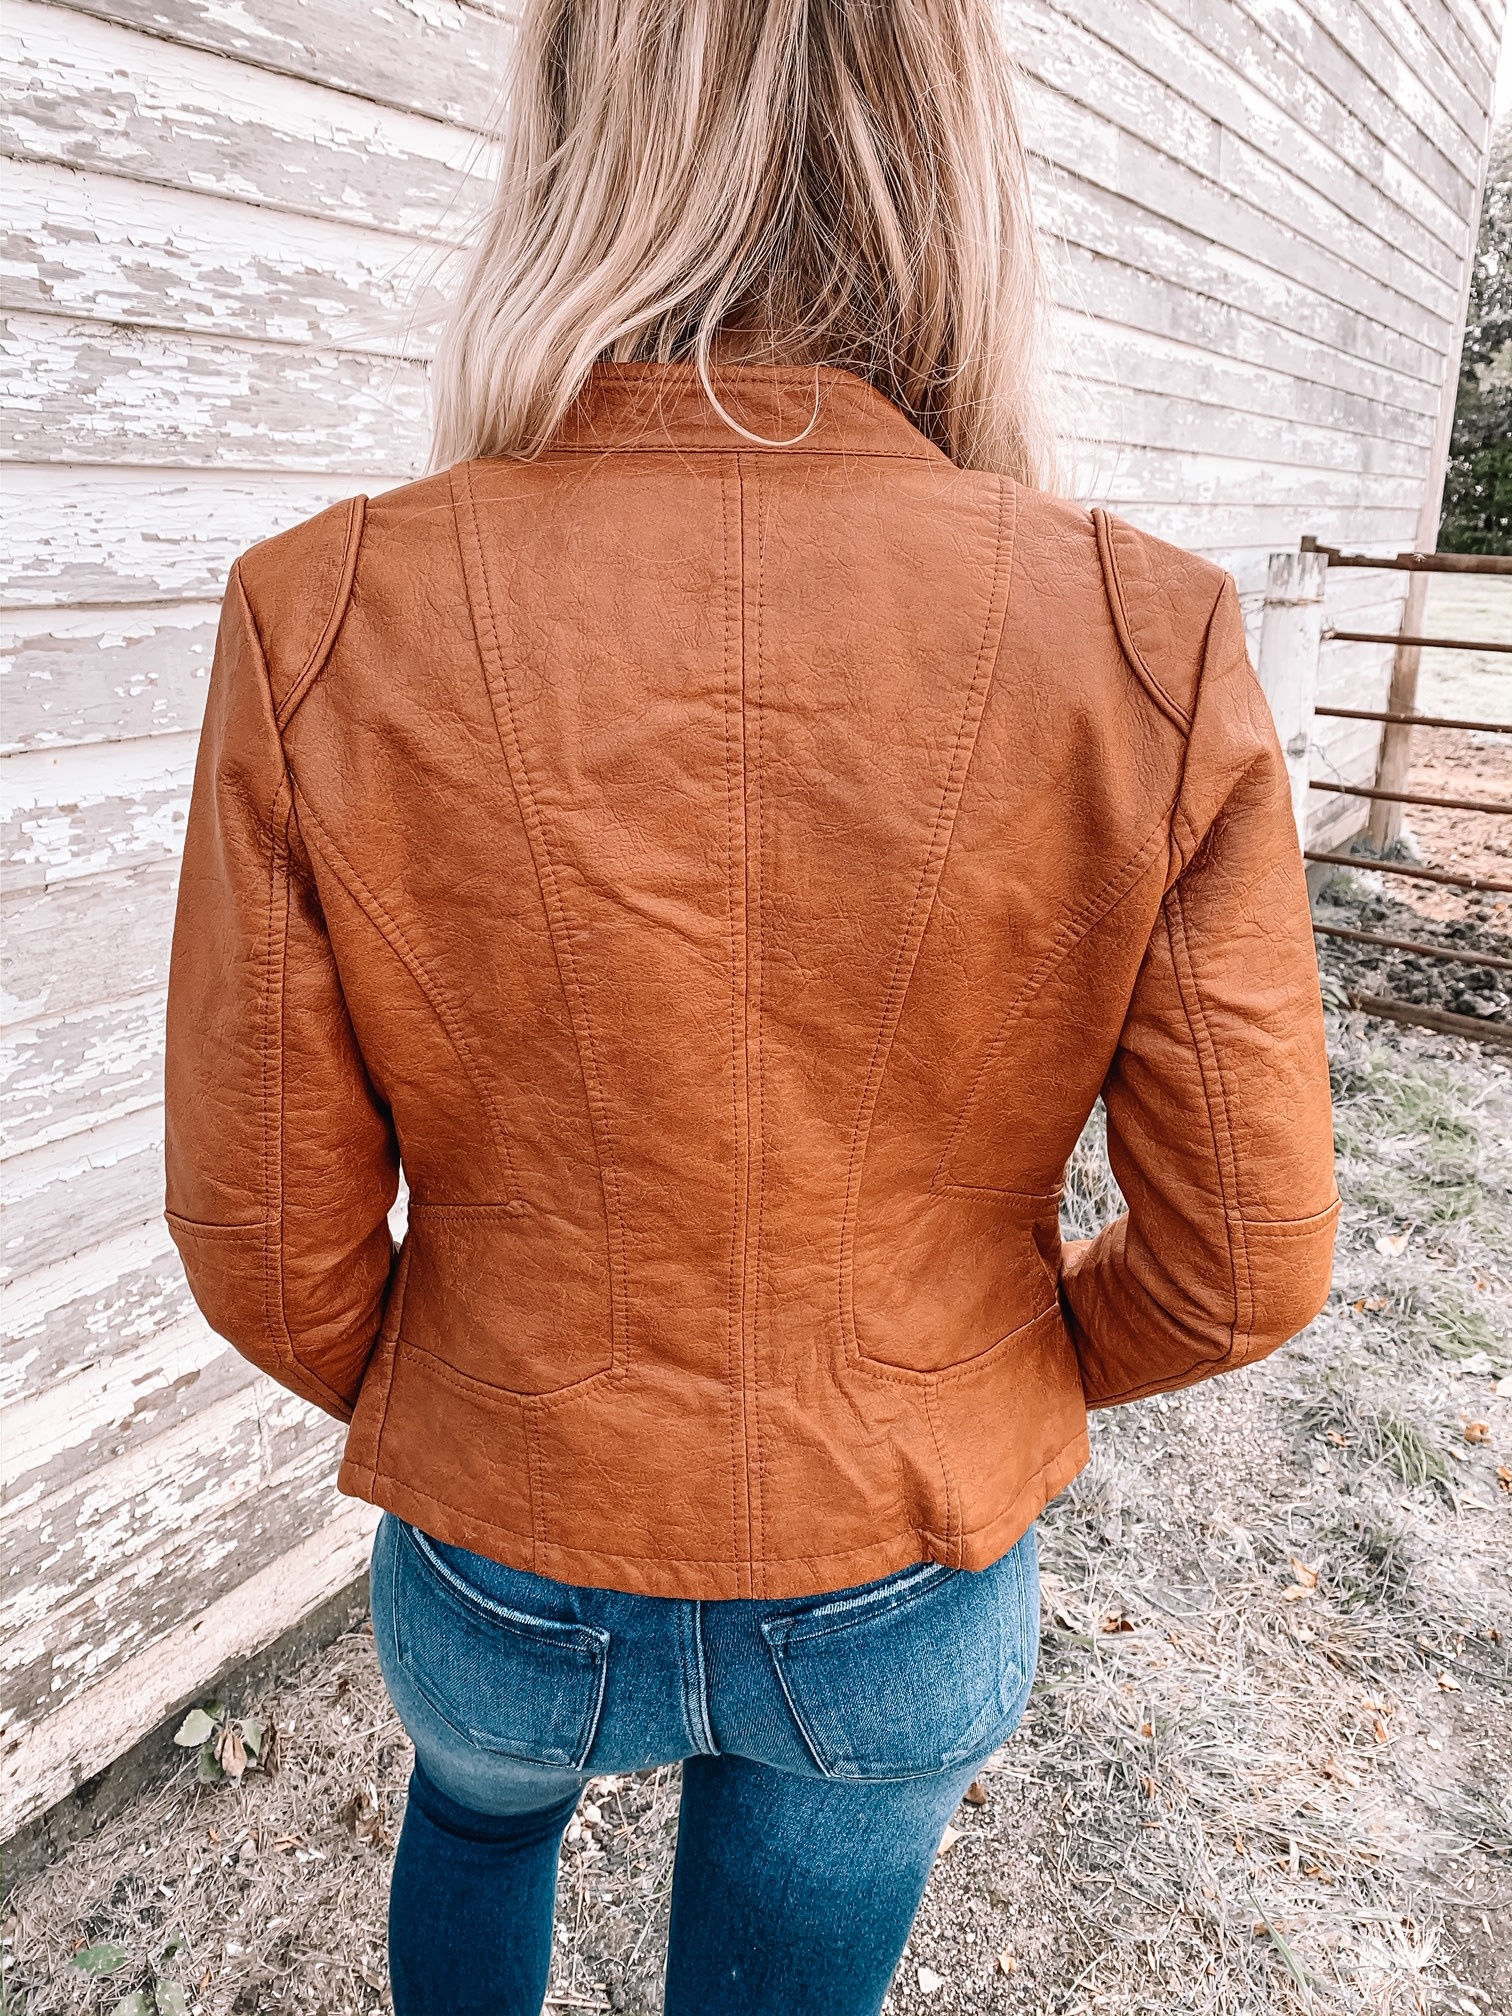 Coalition Camel Vegan Leather Jacket